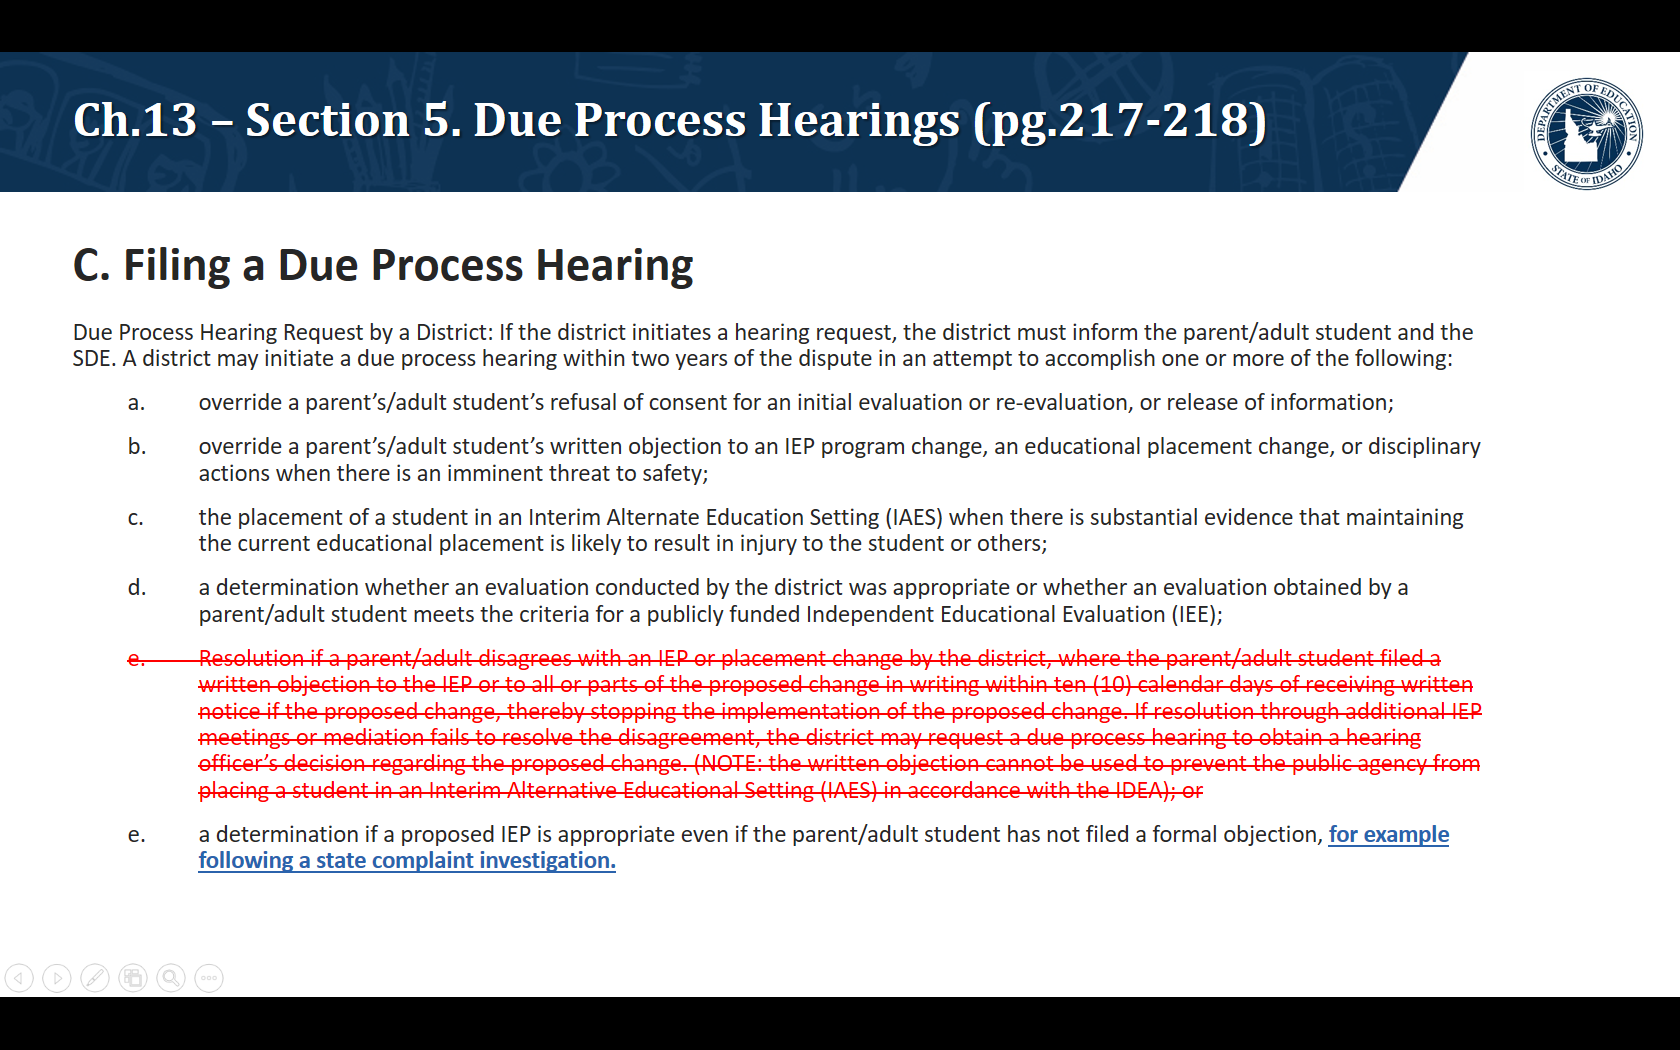 C. Filing a Due Process Hearing. Due Process Hearing Request by a District: If the district initiates a hearing request, the district must inform the parent/adult student and the SDE. A district may initiate a due process hearing within two years of the dispute in an attempt to accomplish one or more of the following:  override a parent's/adult student's refusal of consent for an initial evaluation or re-evaluation, or release of information;  override a parent's/adult student's written objection to an IEP program change, an educational placement change, or disciplinary actions when there is an imminent threat to safety;  the placement of a student in an Interim Alternate Education Setting (IAES) when there is substantial evidence that maintaining the current educational placement is likely to result in injury to the student or others;  a determination whether an evaluation conducted by the district was appropriate or whether an evaluation obtained by a parent/adult student meets the criteria for a publicly funded Independent Educational Evaluation (IEE);  a determination if a proposed IEP is appropriate even if the parent/adult student has not filed a formal objection, for example following a state complaint investigation.